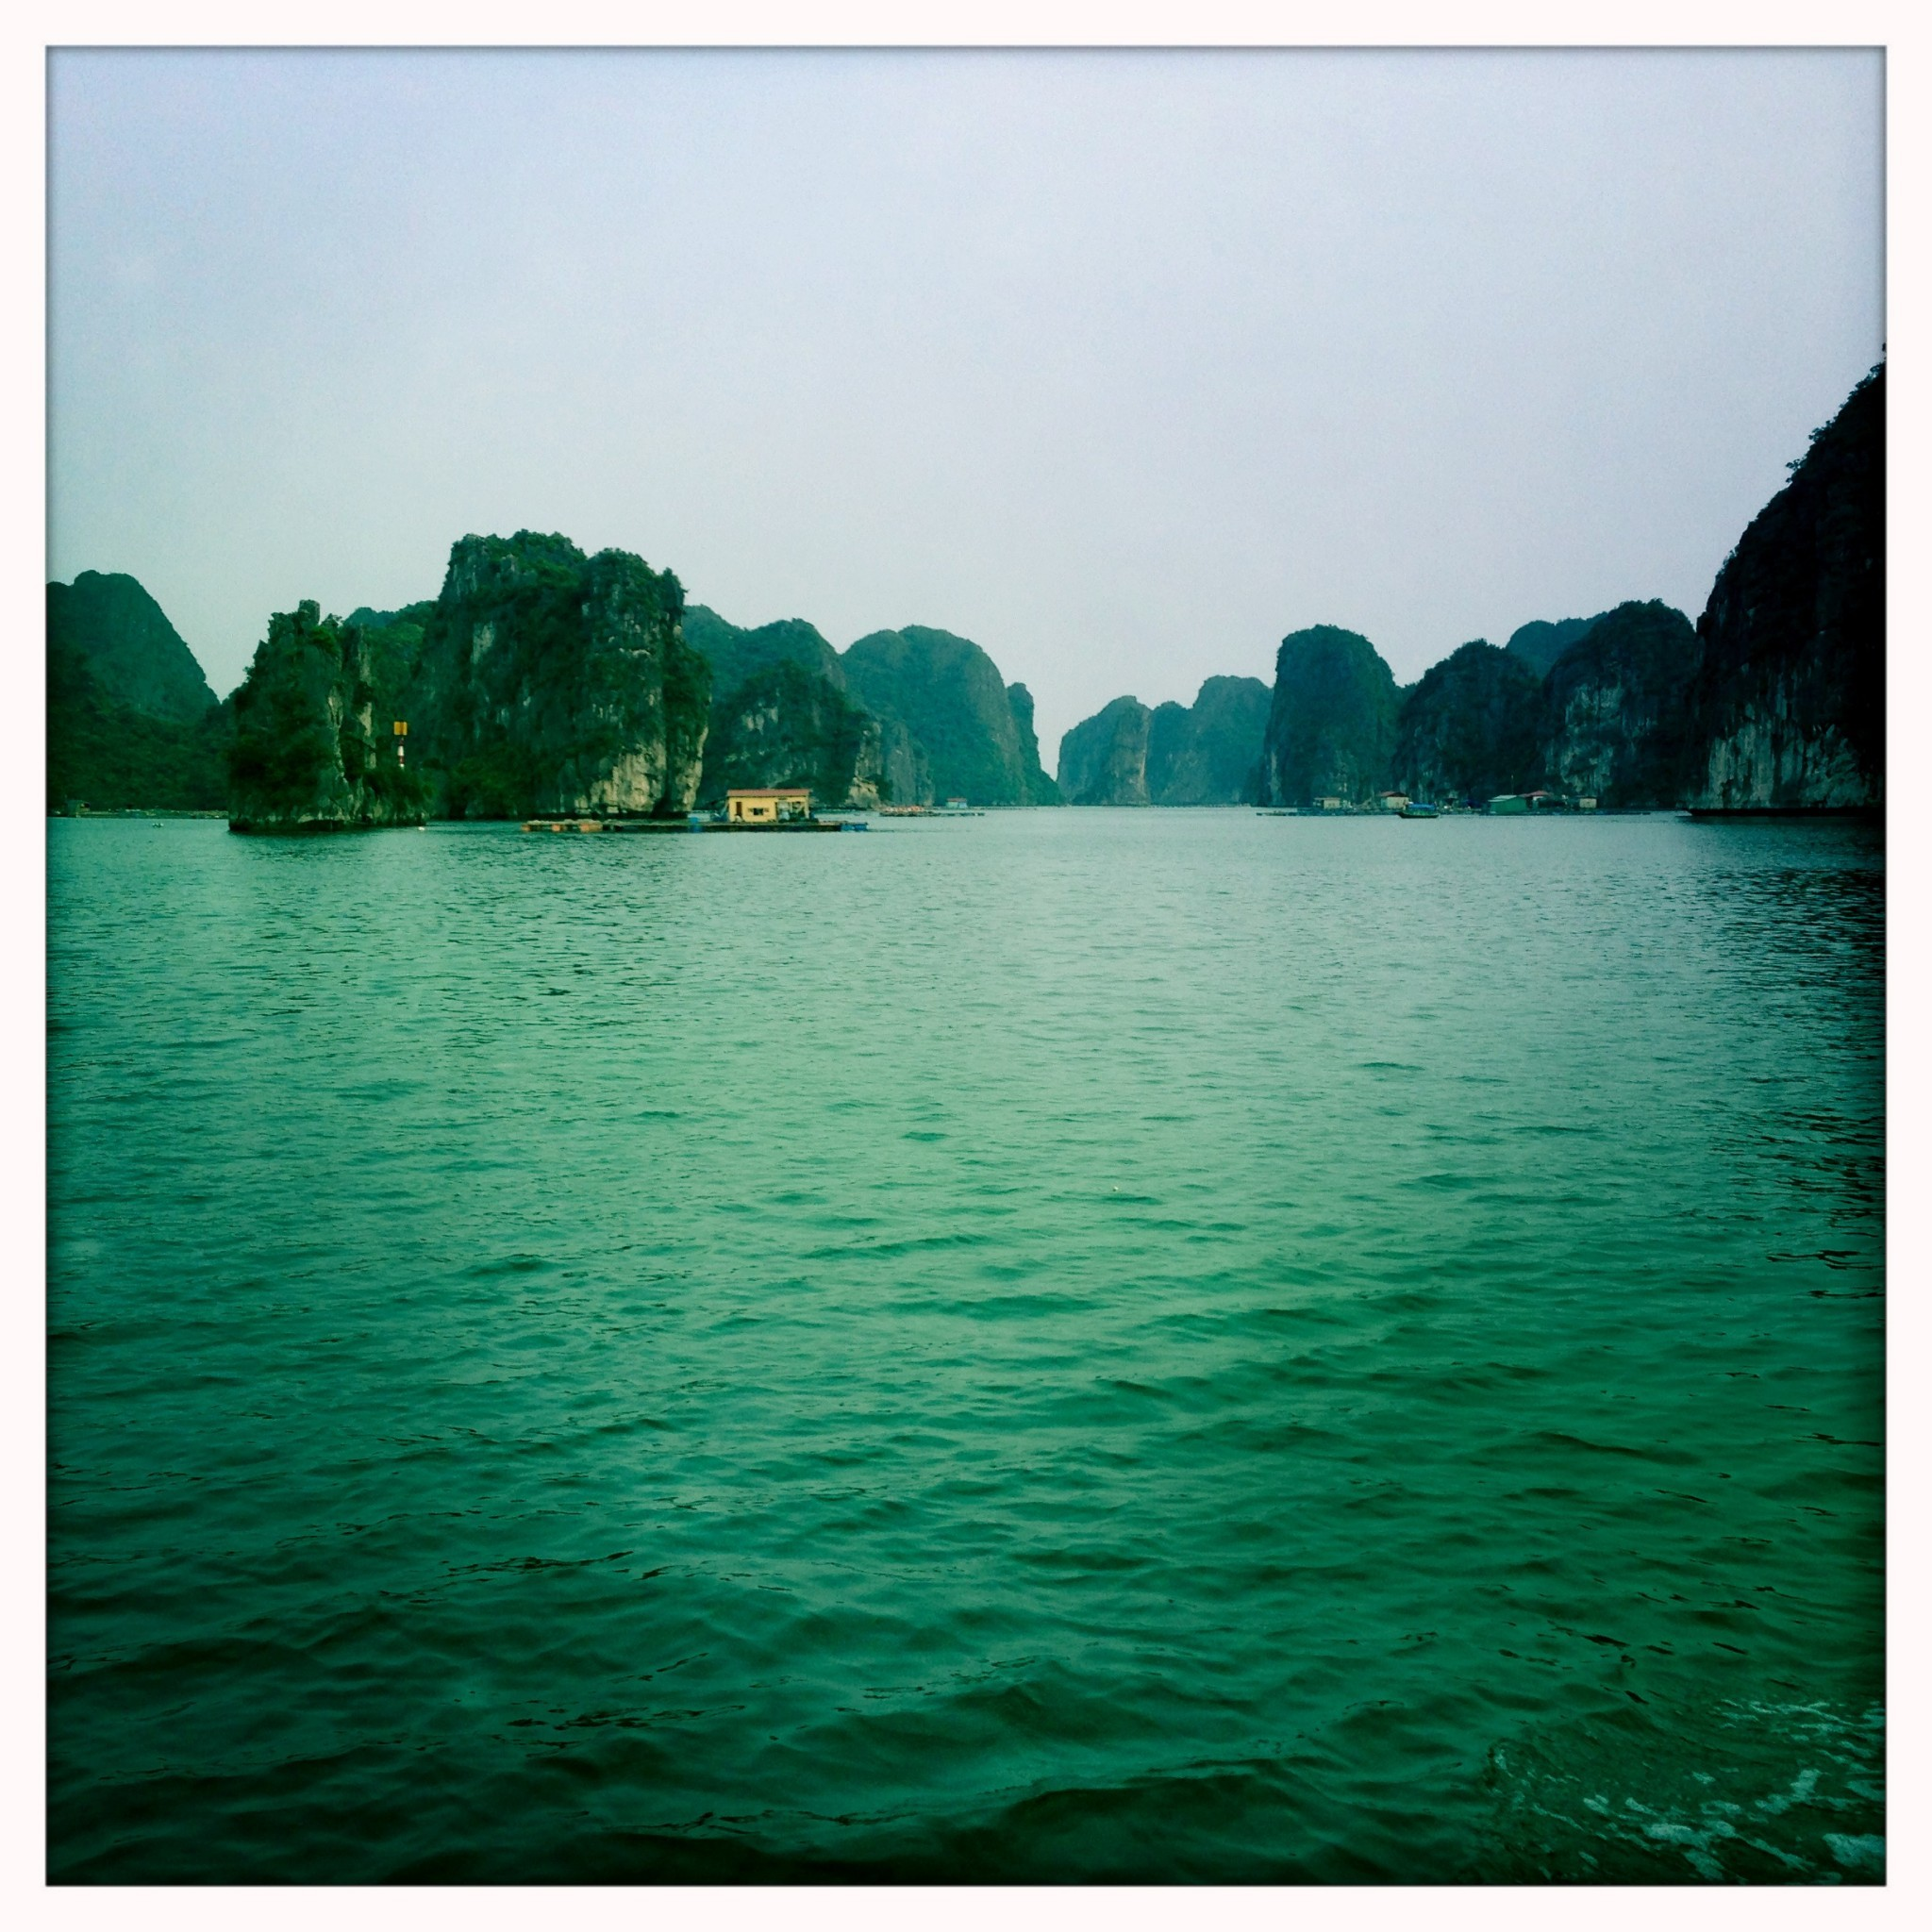 Long wondering about the Ha Long wonder